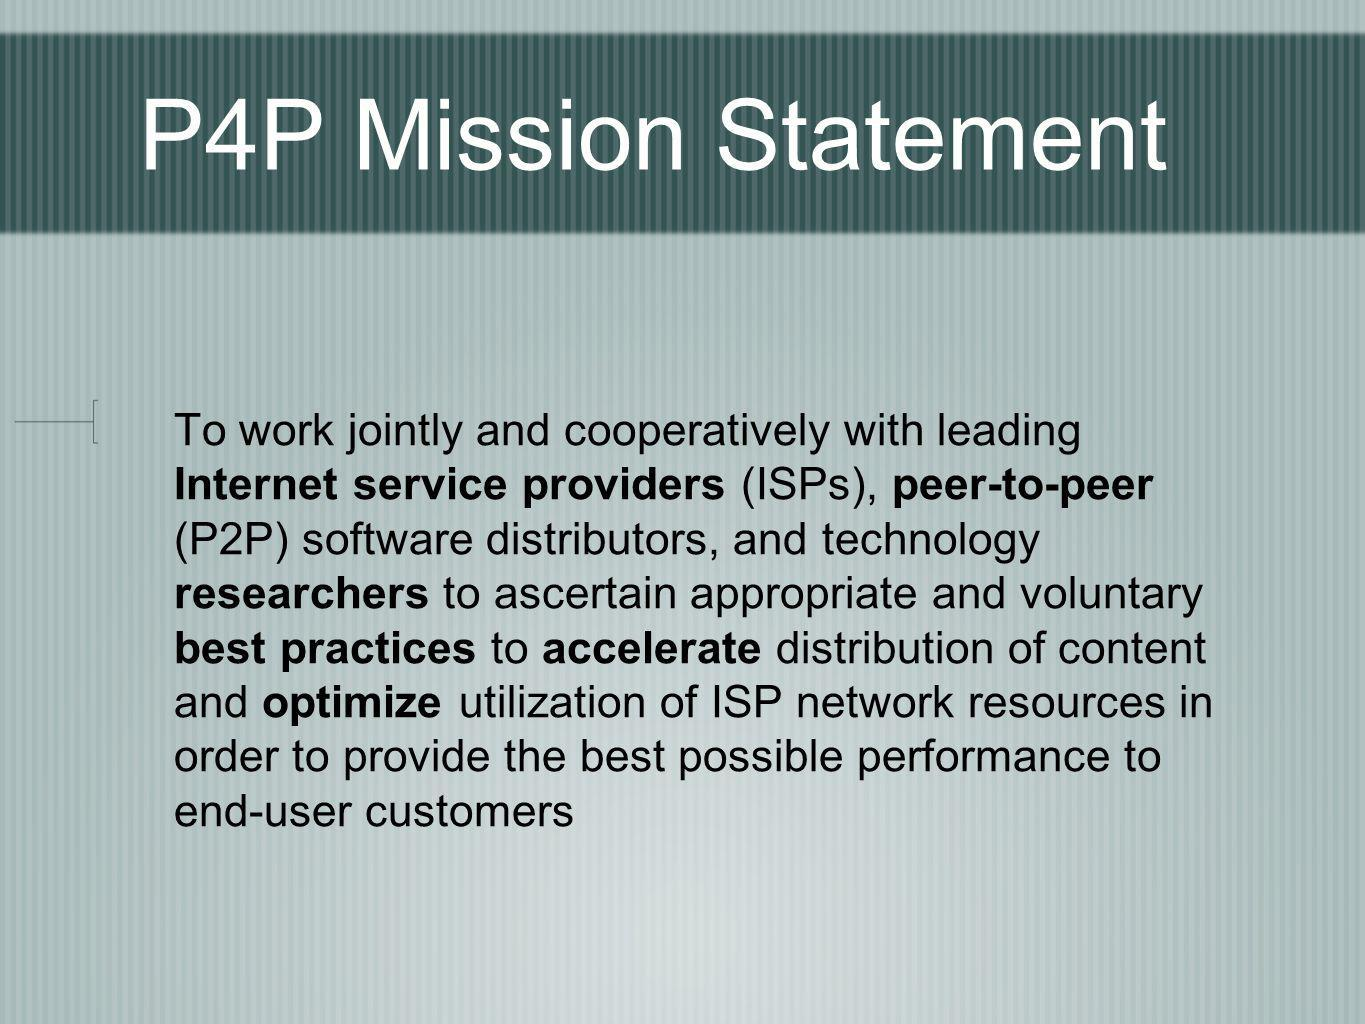 P4P Mission Statement